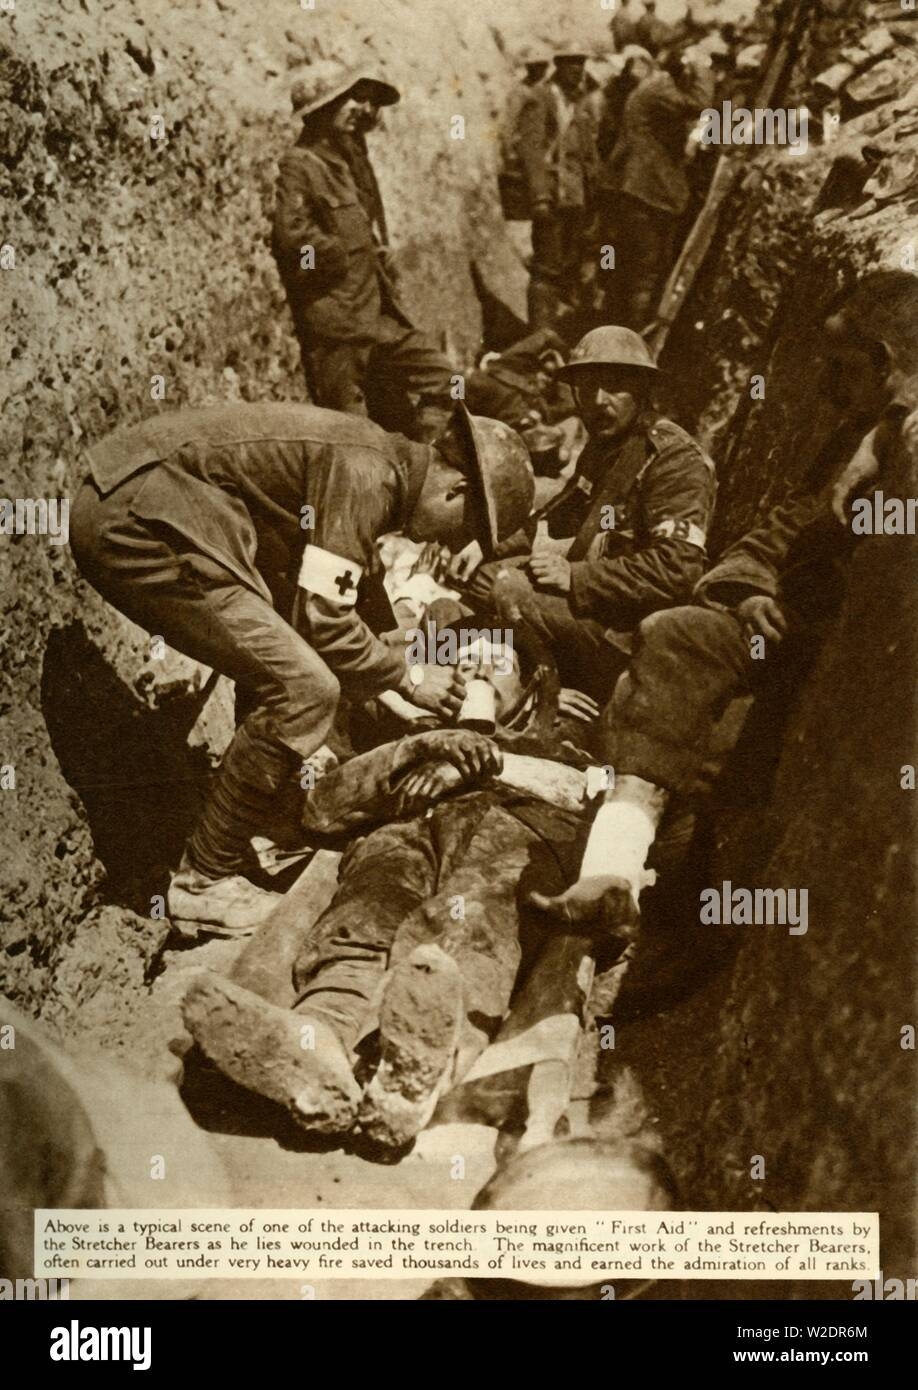 """Wounded British soldier being treated in the trenches during the Battle of the Somme, First World War, 1916, (1935). 'One of the attacking soldiers being given """"First Aid"""" and refreshments by the Stretcher Bearers as he lies wounded in the trench. The magnificent work of the Stretcher Bearers, often carried out under very heavy fire, saved thousands of lives and earned the admiration of all ranks.' From """"The Silver Jubilee Book - The Story of 25 Eventful Years in Pictures"""". [Odhams Press Ltd., London, 1935] - Stock Image"""